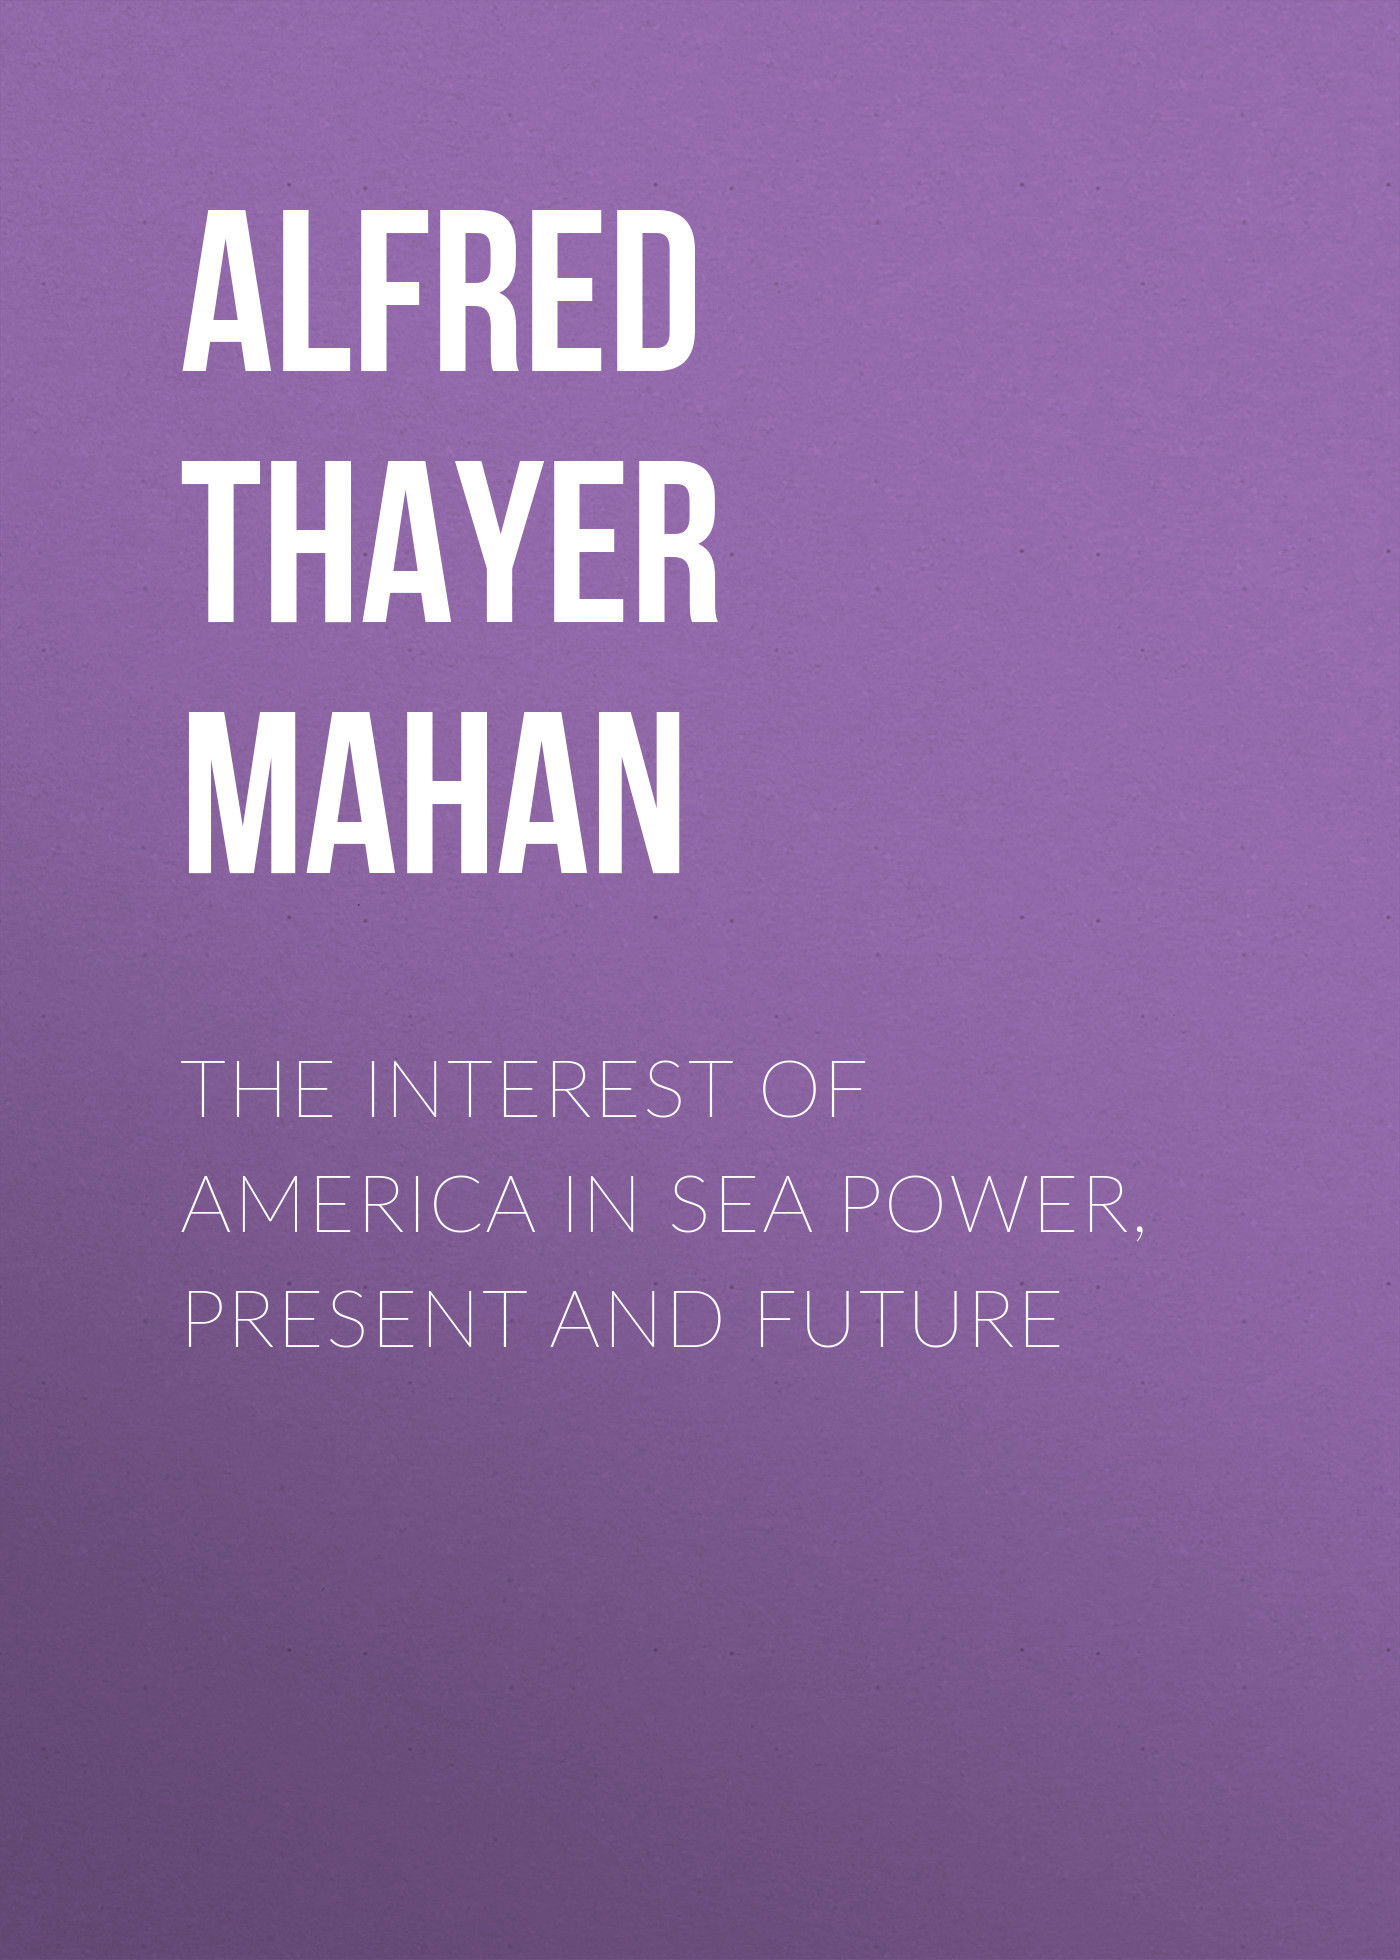 Alfred Thayer Mahan The Interest of America in Sea Power, Present and Future